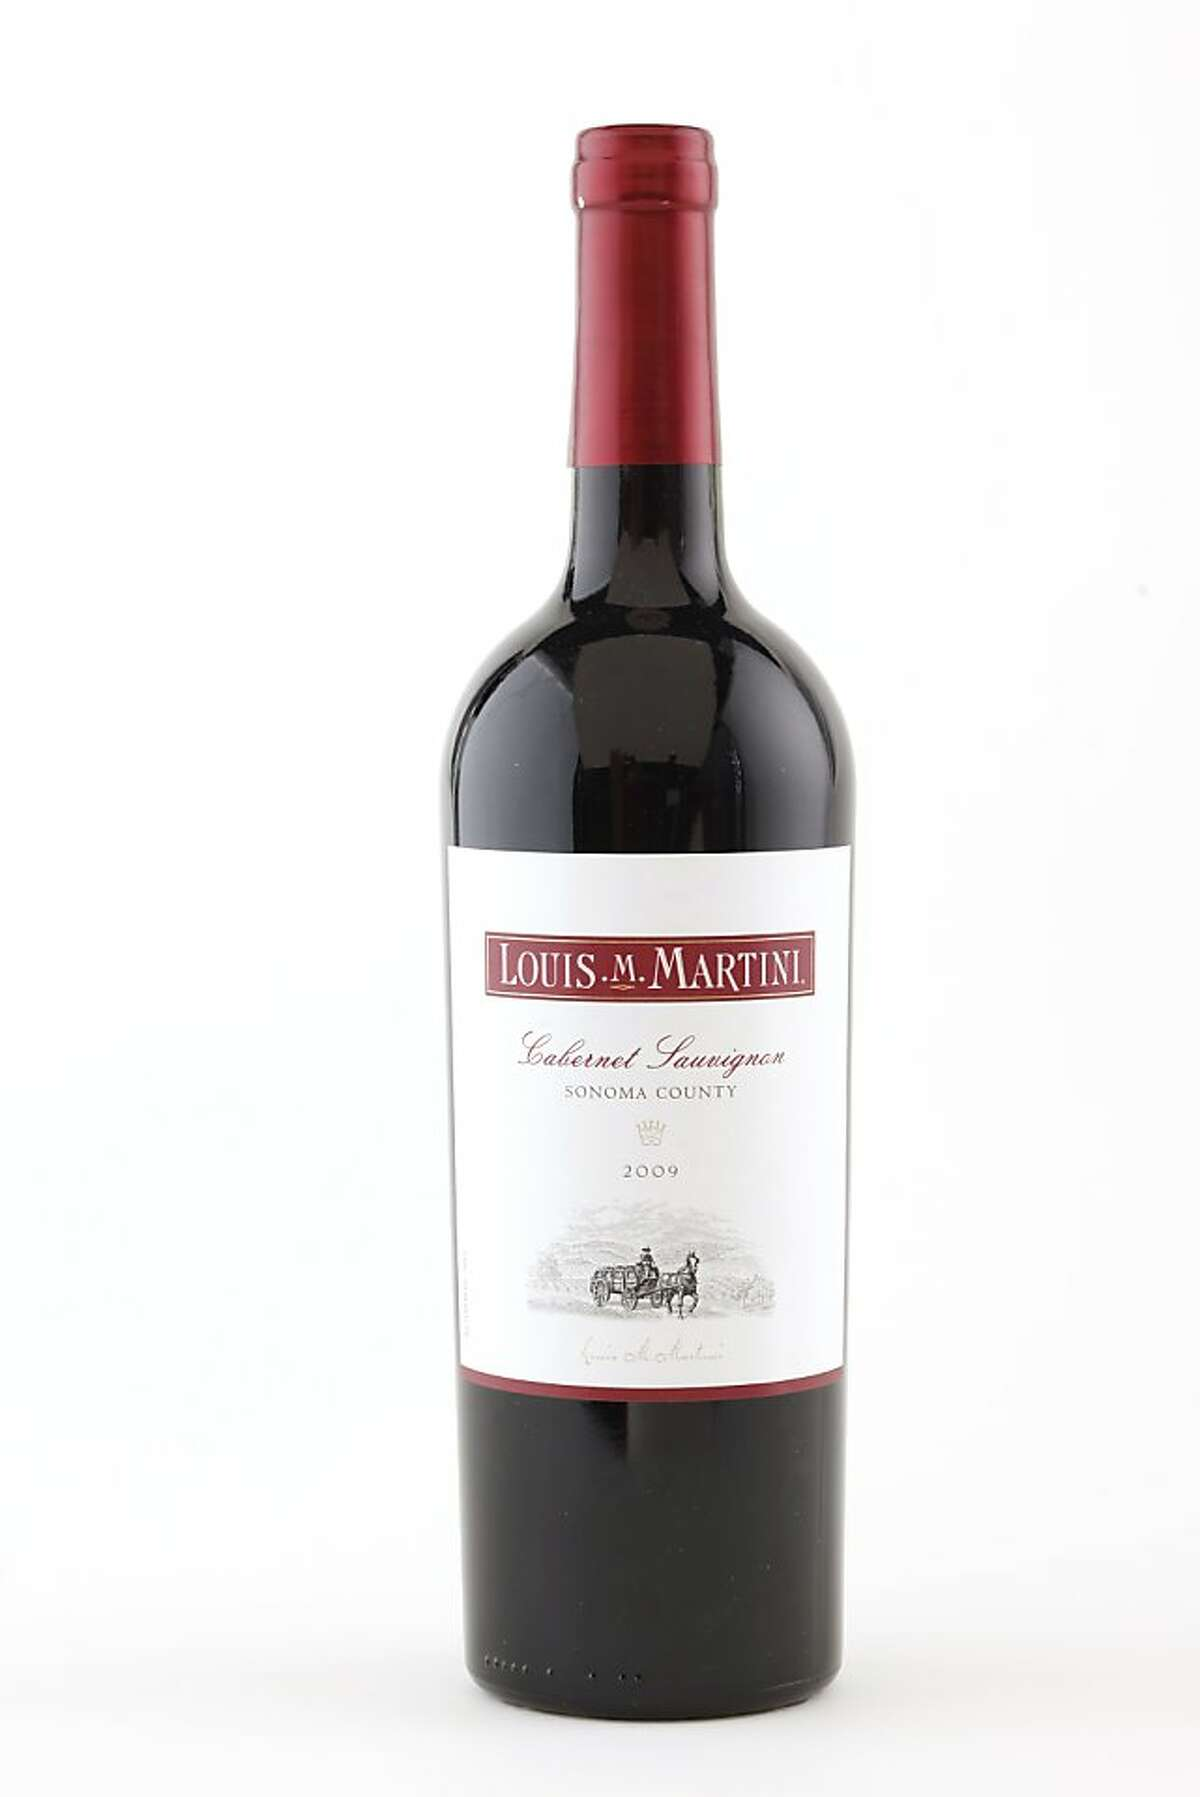 2009 Louis Martini Cabernet as seen in San Francisco, California, on Wednesday, September 7, 2011. Ran on: 09-18-2011 Photo caption Dummy text goes here. Dummy text goes here. Dummy text goes here. Dummy text goes here. Dummy text goes here. Dummy text goes here. Dummy text goes here. Dummy text goes here.###Photo: GRID18_louis_ph1315267200SFC###Live Caption:2009 Louis Martini Cabernet as seen in San Francisco, California, on Wednesday, September 7, 2011.###Caption History:2009 Louis Martini Cabernet as seen in San Francisco, California, on Wednesday, September 7, 2011.###Notes:###Special Instructions:MANDATORY CREDIT FOR PHOTOG AND SF CHRONICLE-NO SALES-MAGS OUT-INTERNET__OUT-TV OUT